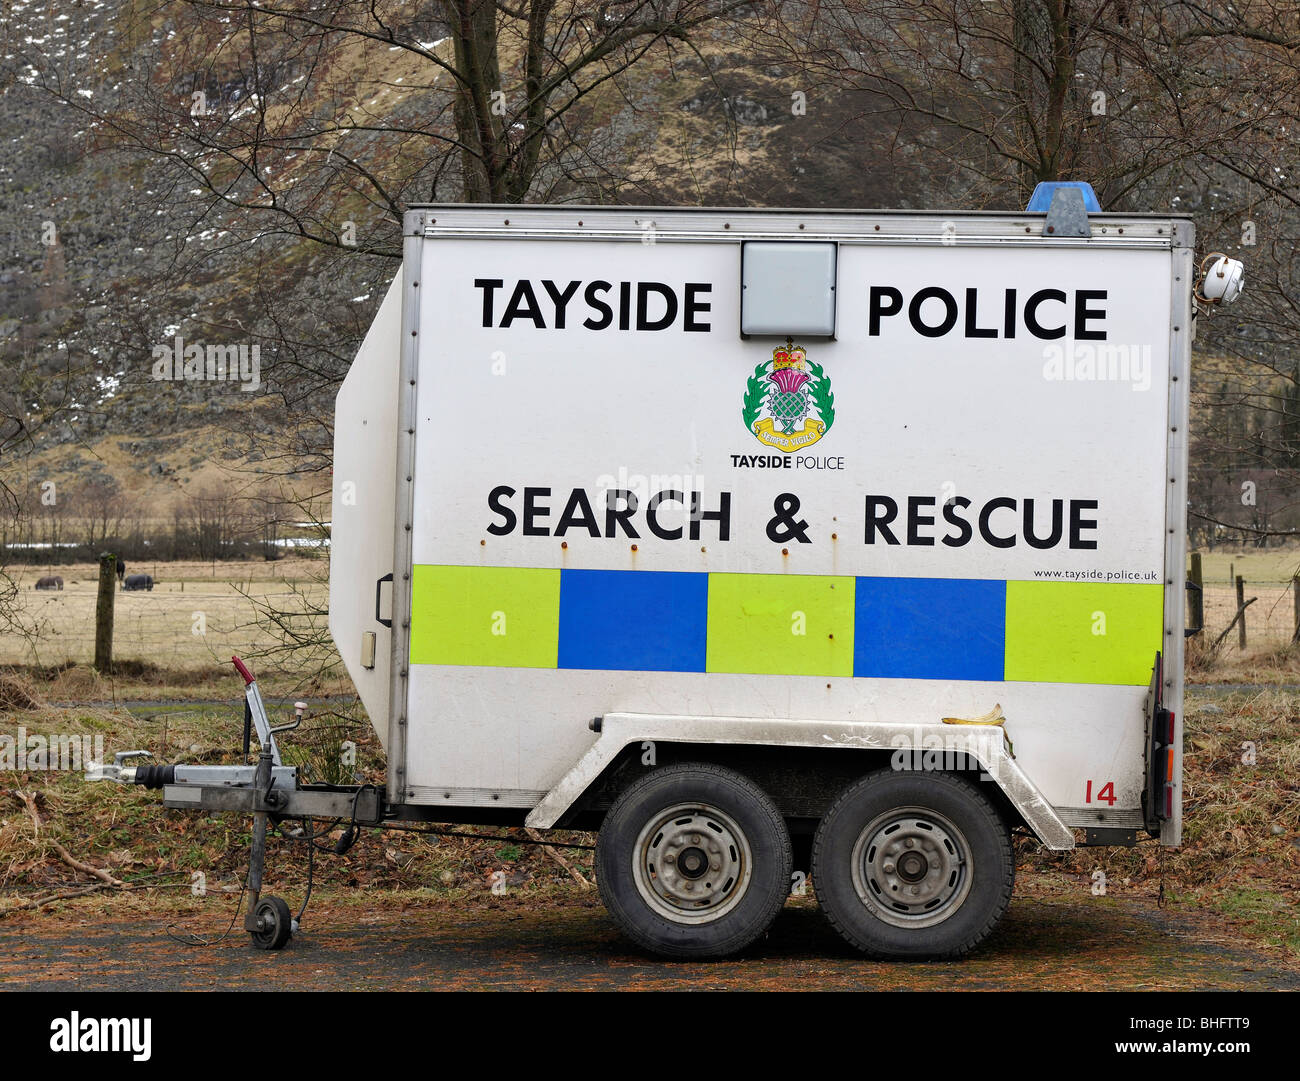 Equipment Trailer of the Search and Rescue Team, Tayside Police, Scotland. - Stock Image